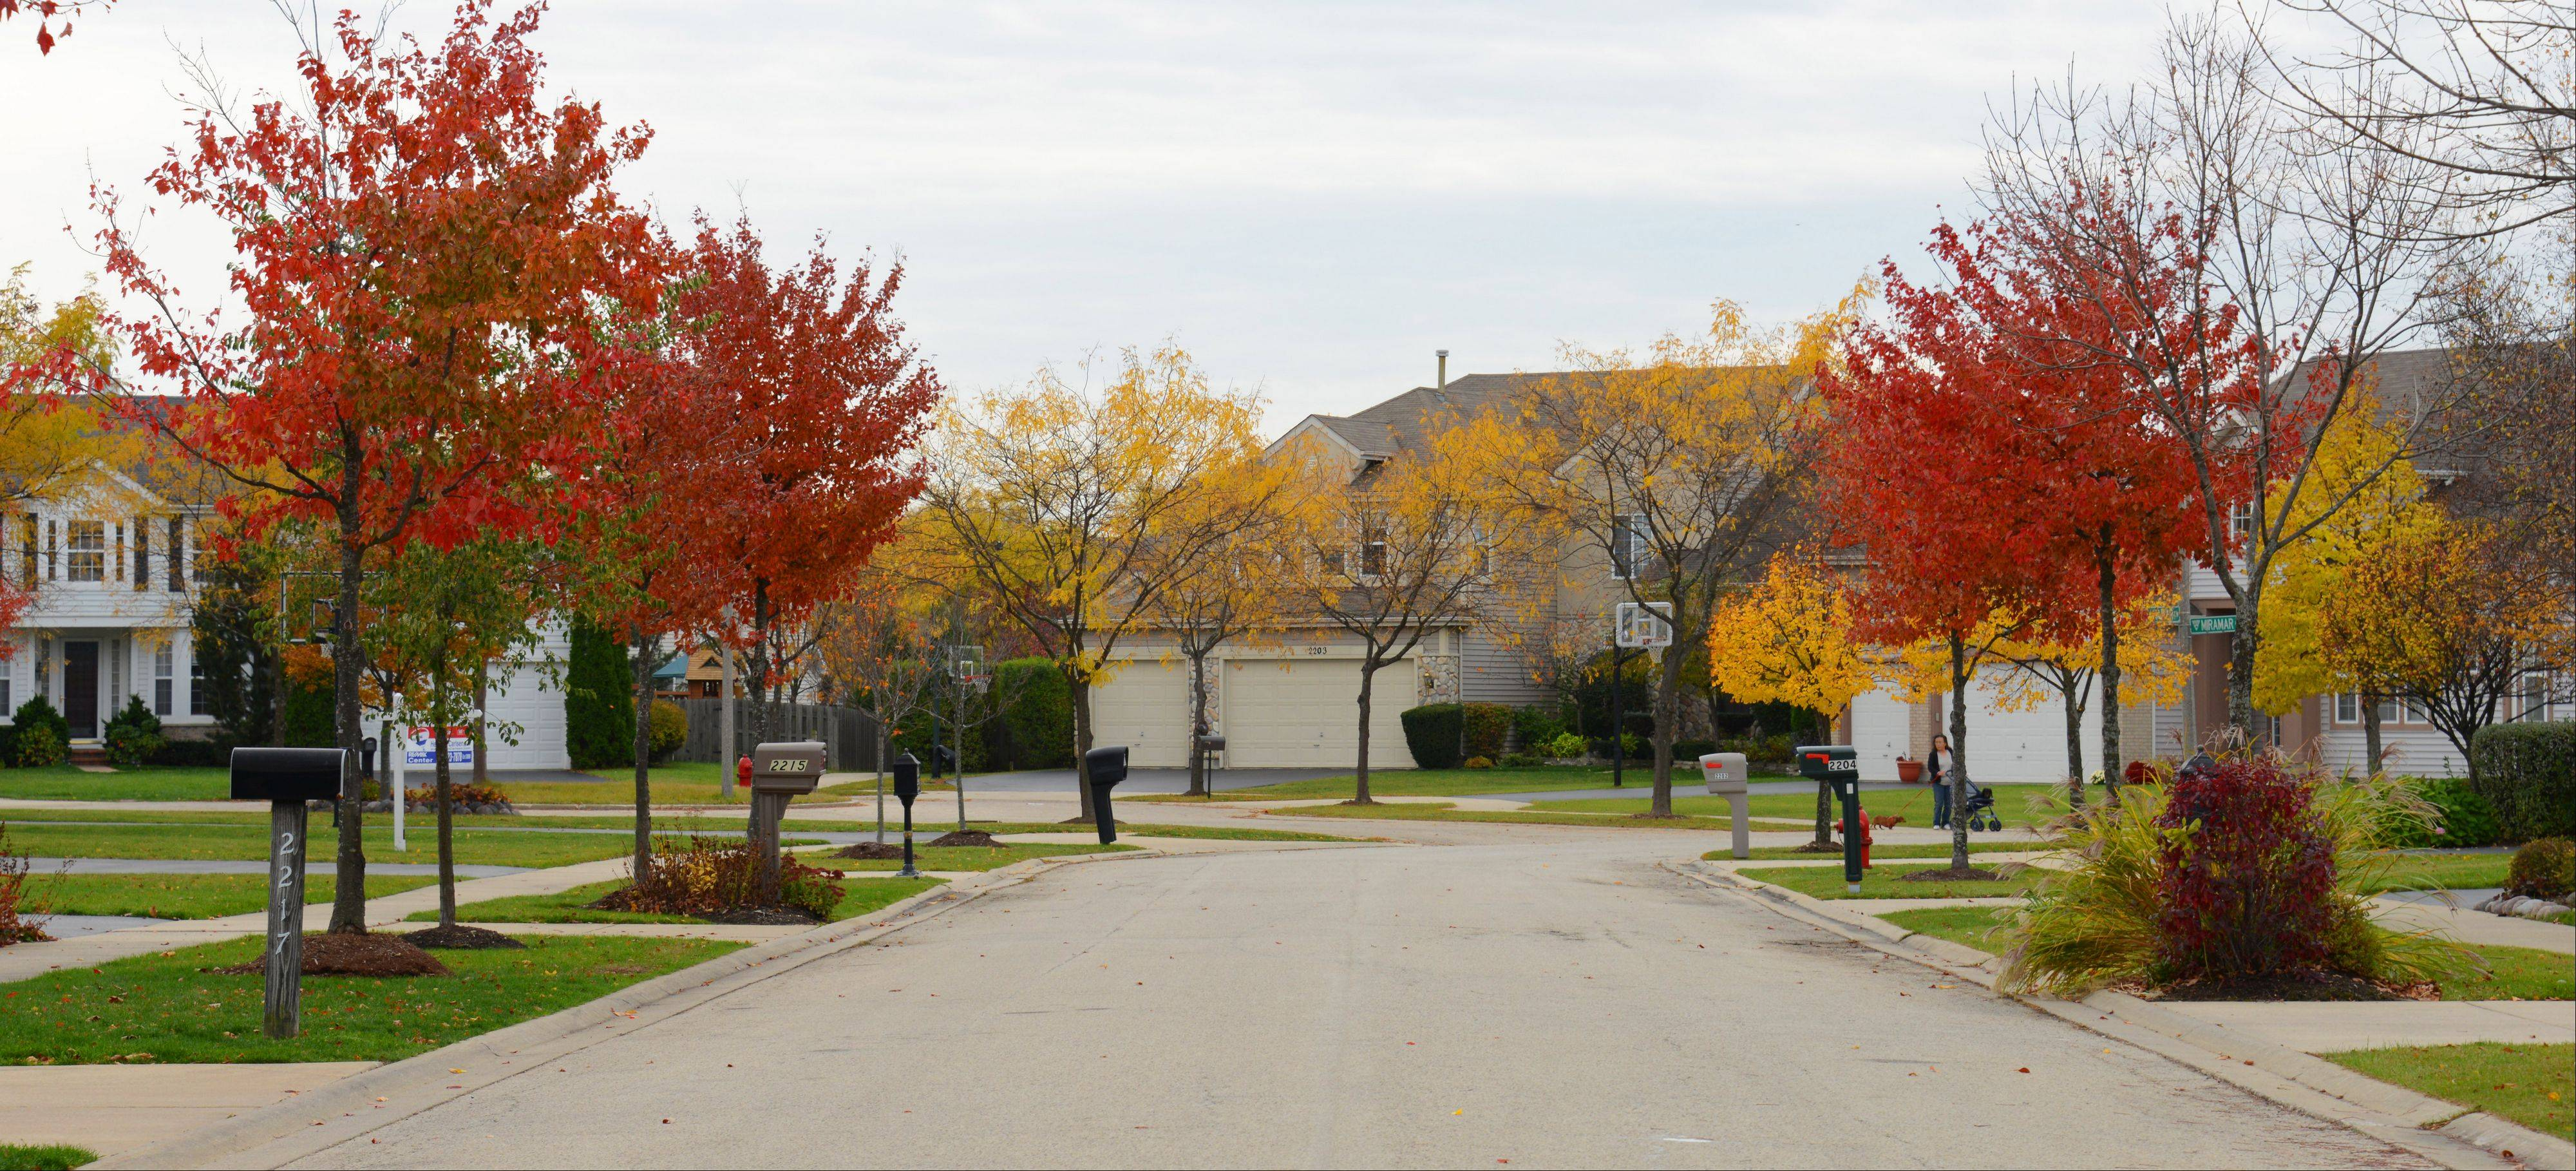 The houses in Buffalo Grove�s Mirielle neighborhood were built by Town and Country Homes in the late 1990s.